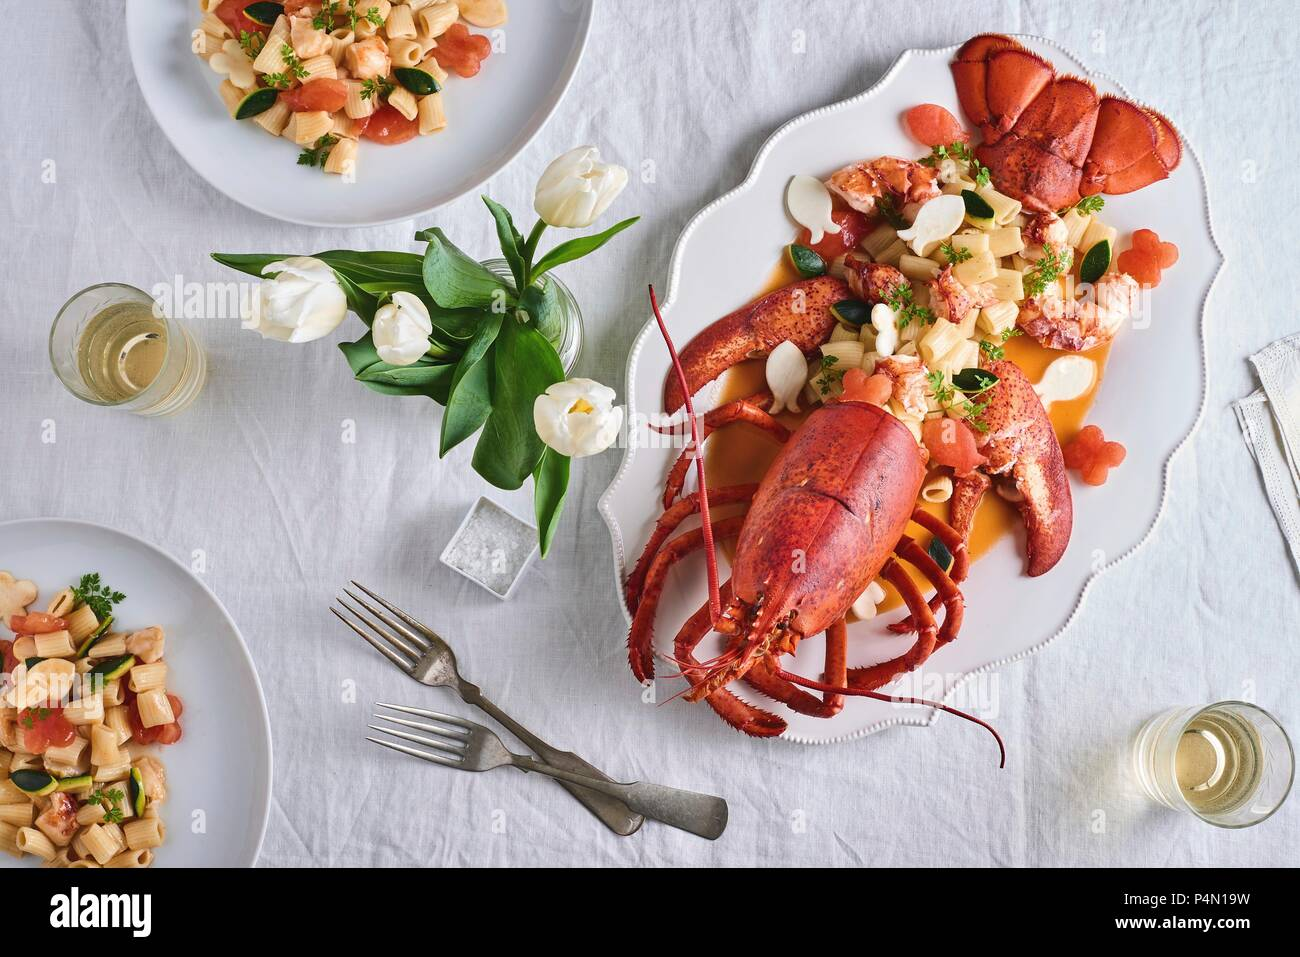 Lobster with rigatoni on a table decorated with a vase of tulips (seen from above) - Stock Image